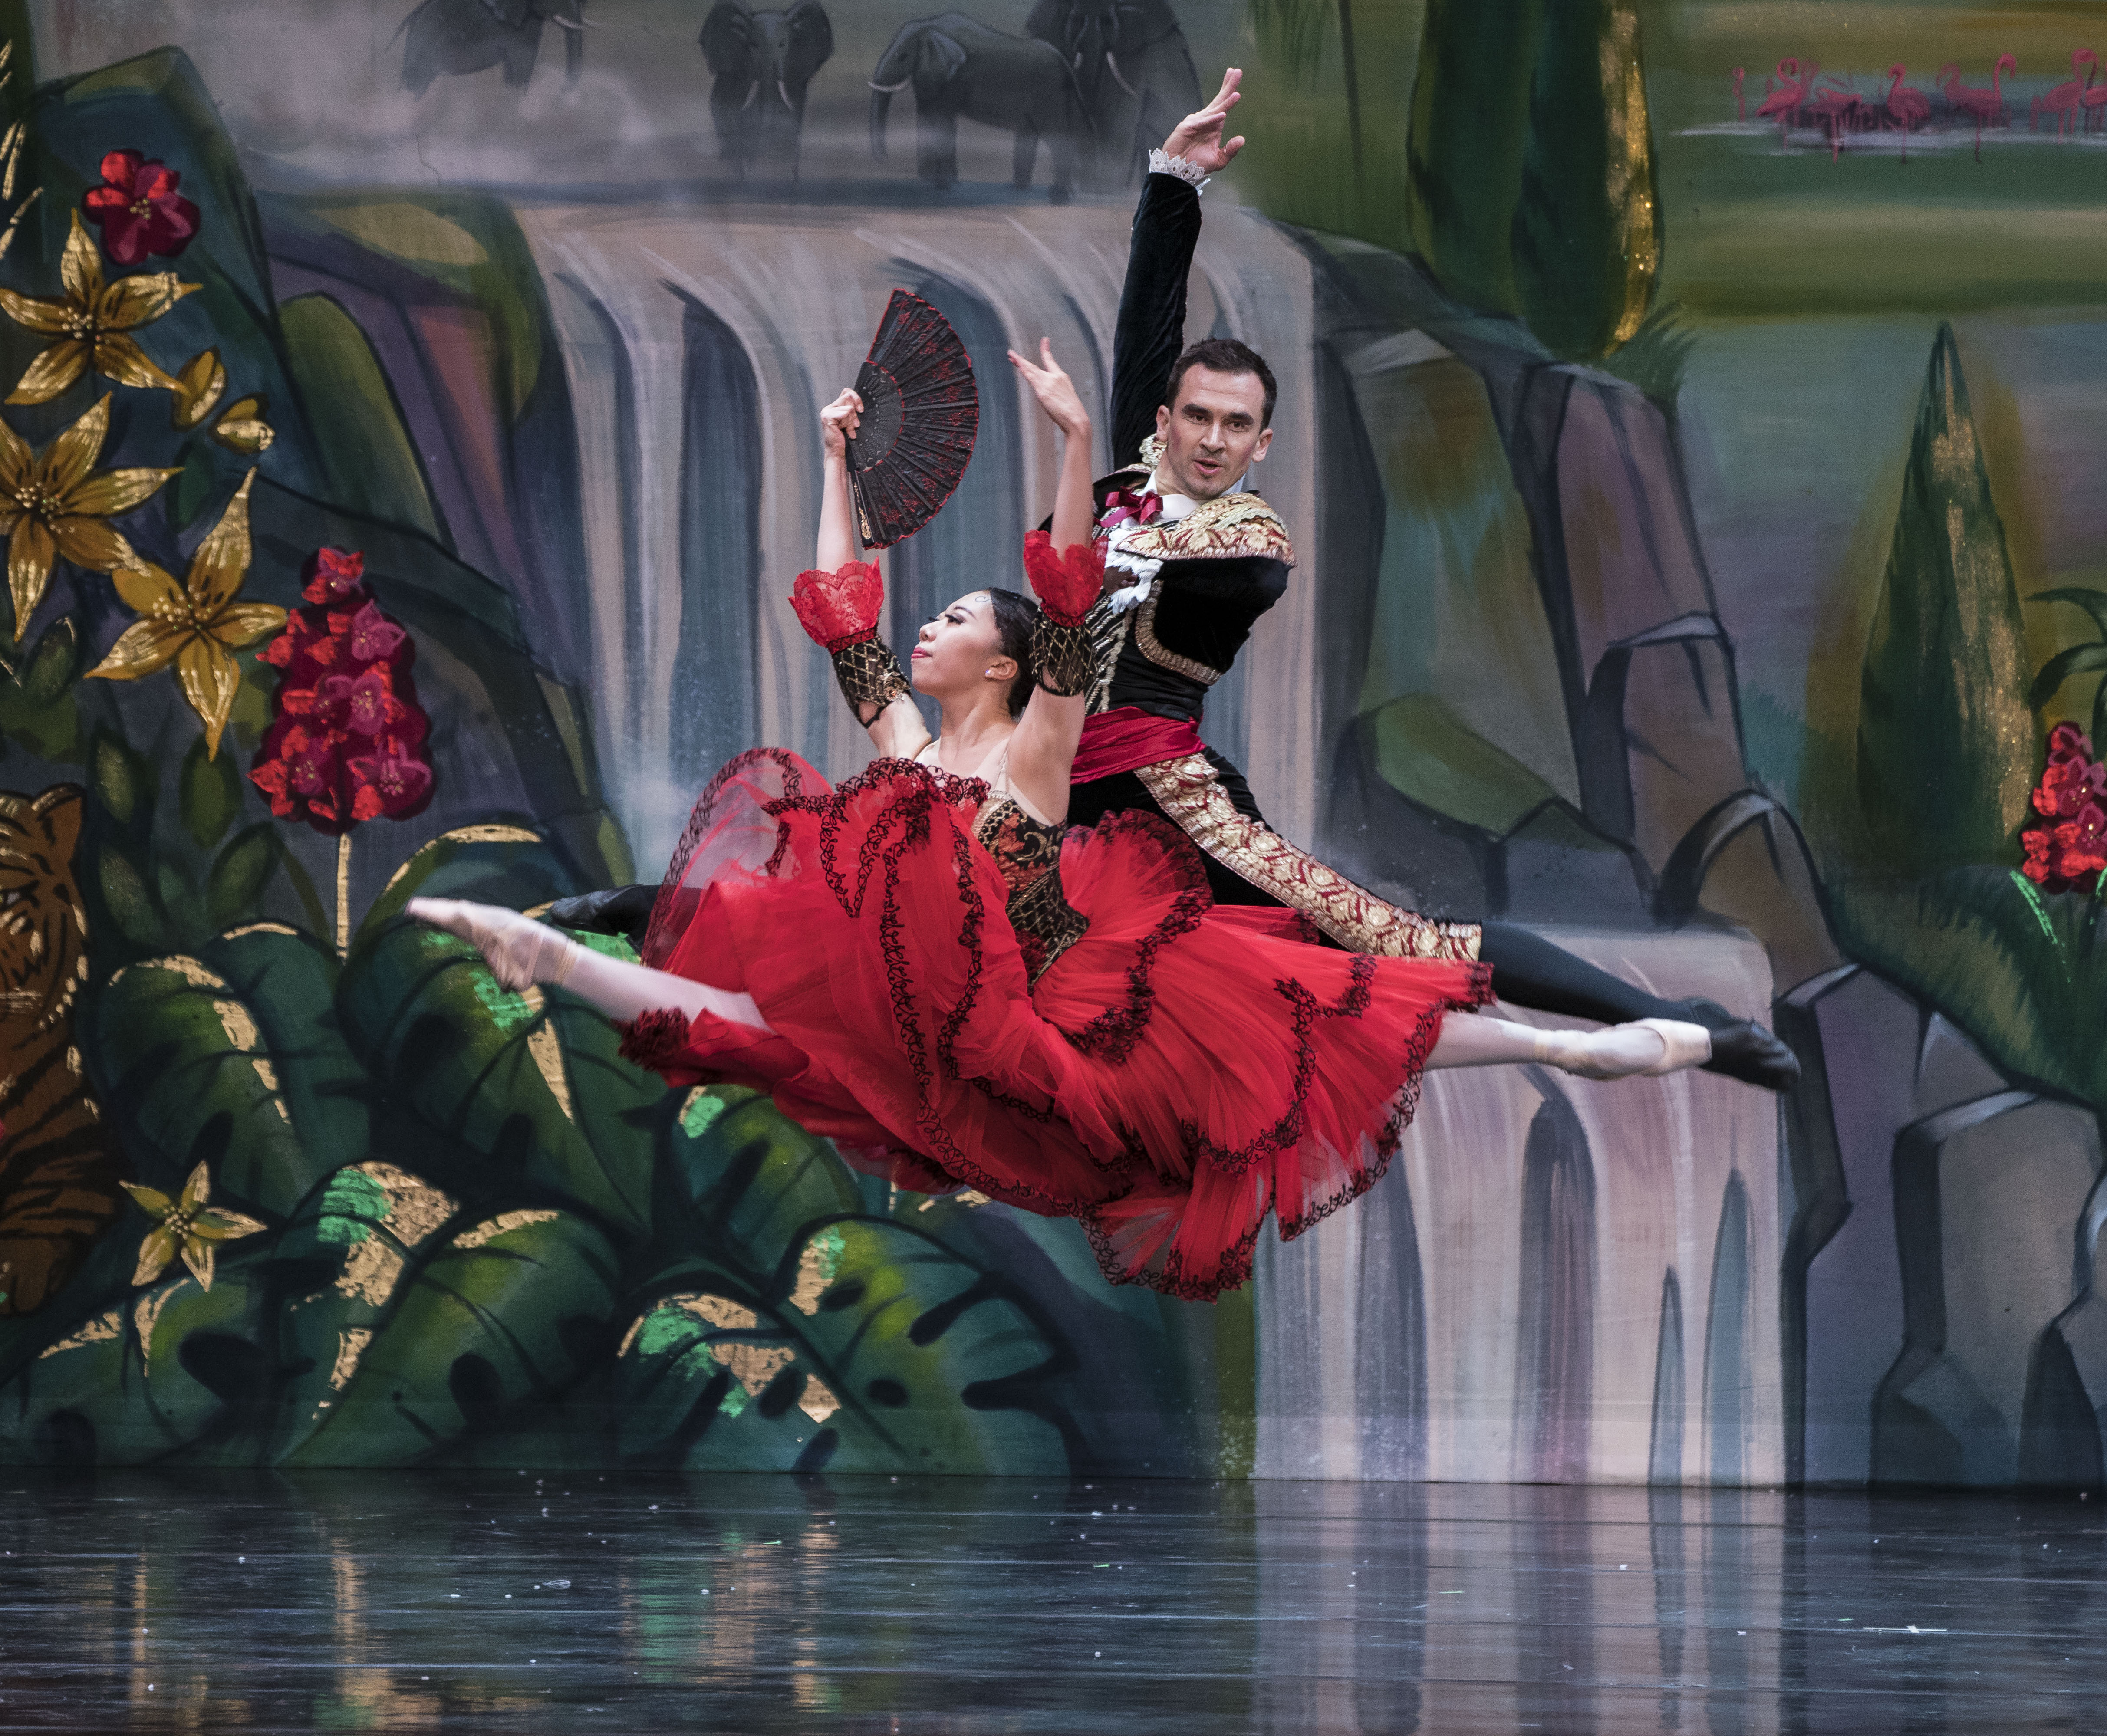 13. Spanish Variation in the Great Russian Nutcracker